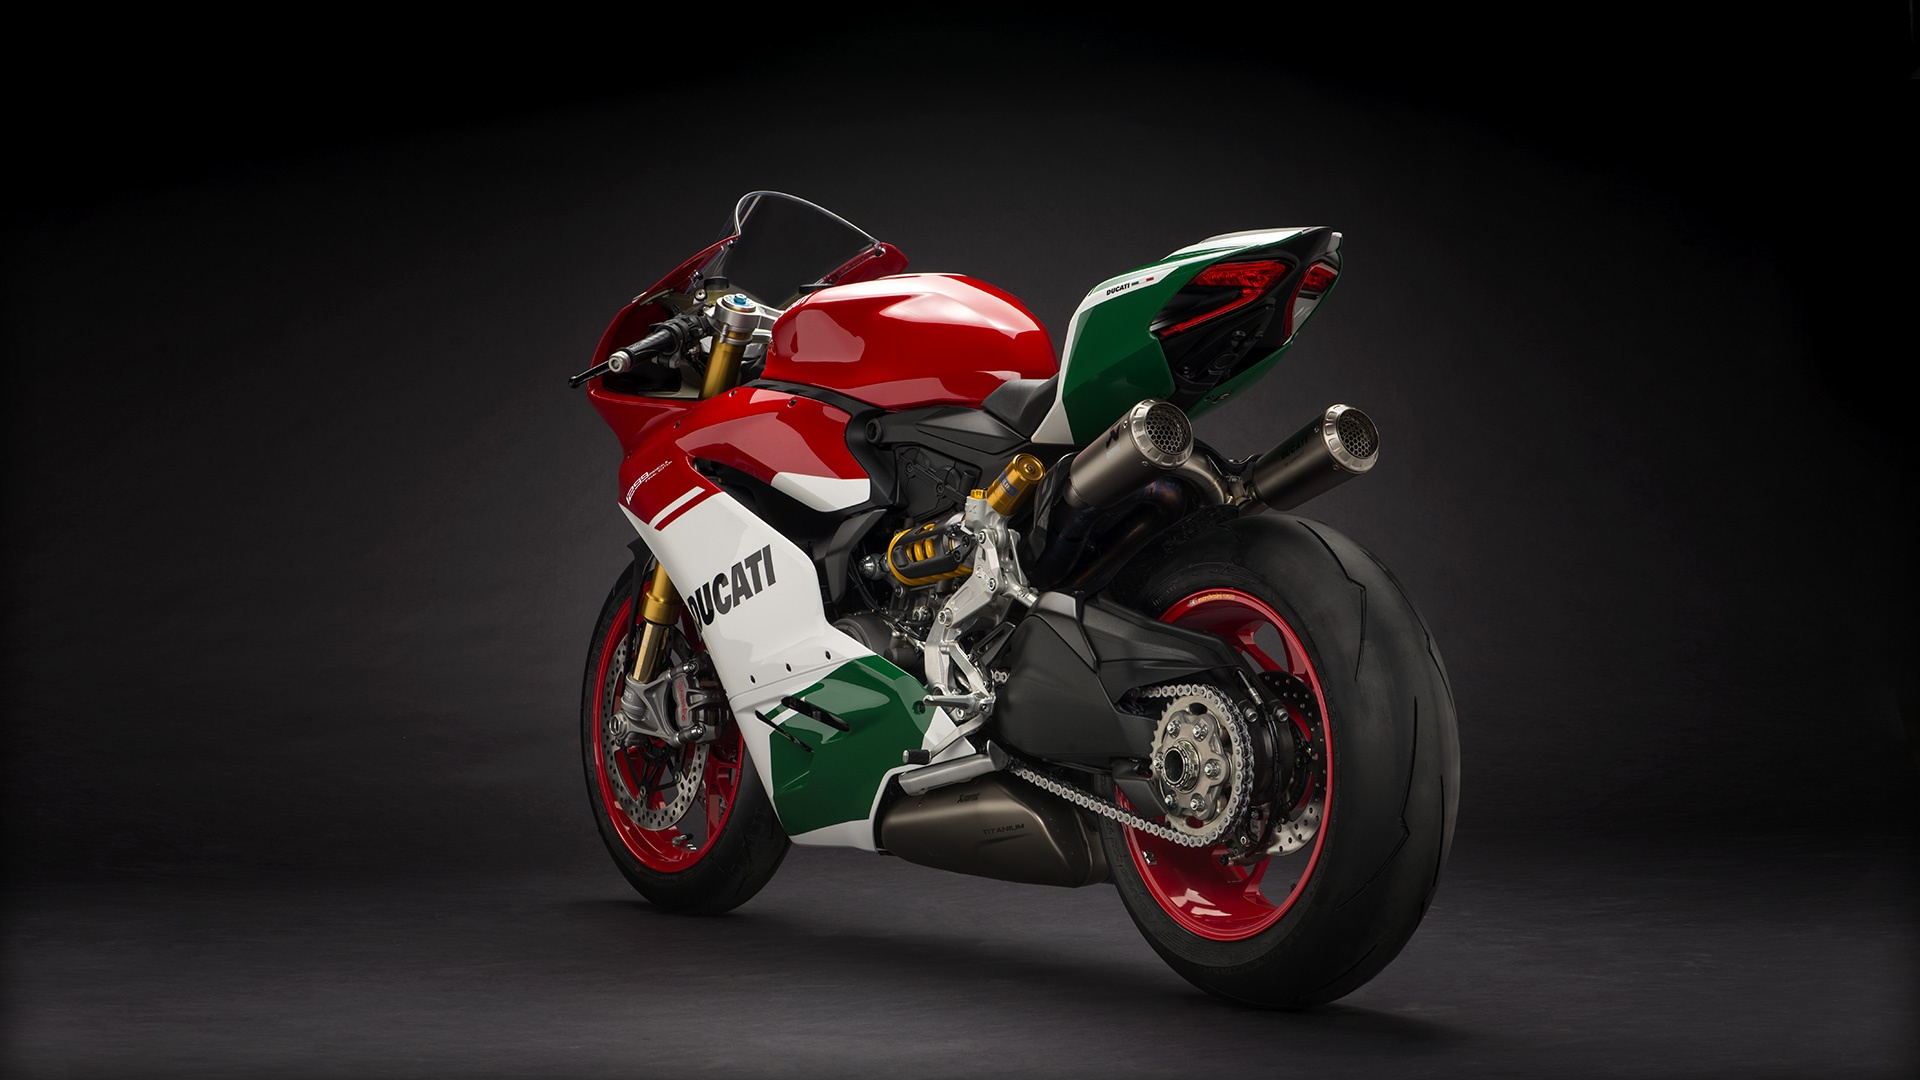 Panigale_Final-Edition_2018_Studio_FE_F01_Gallery_1920x1080.mediagallery_output_image_[1920x1080]